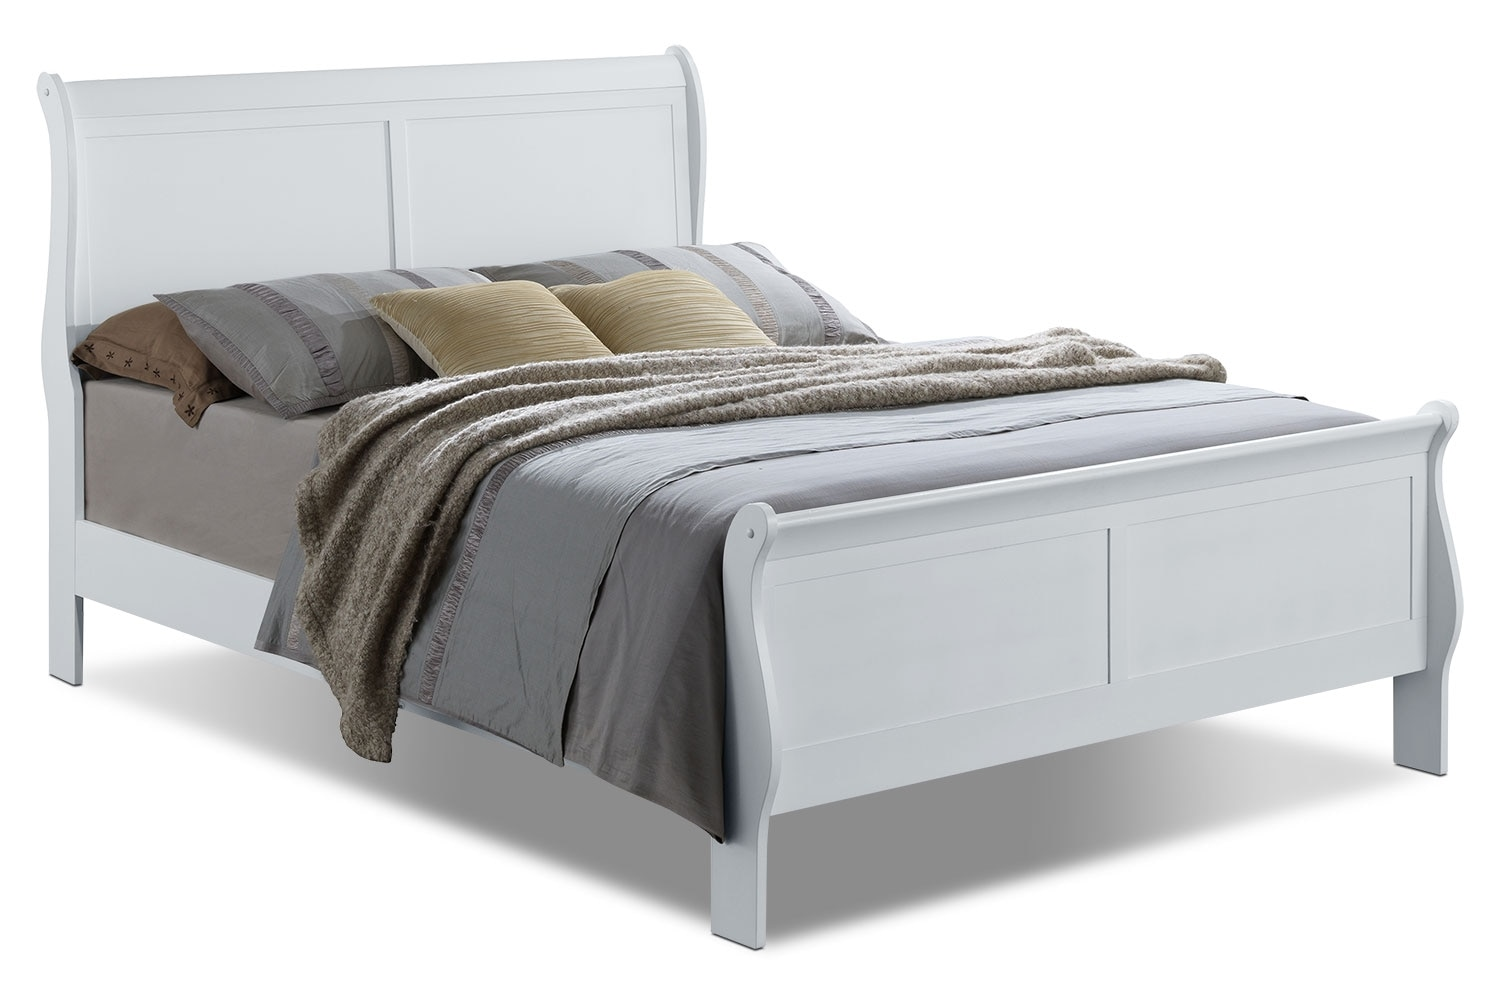 Bedroom Furniture - Belleview Queen Sleigh Bed - White